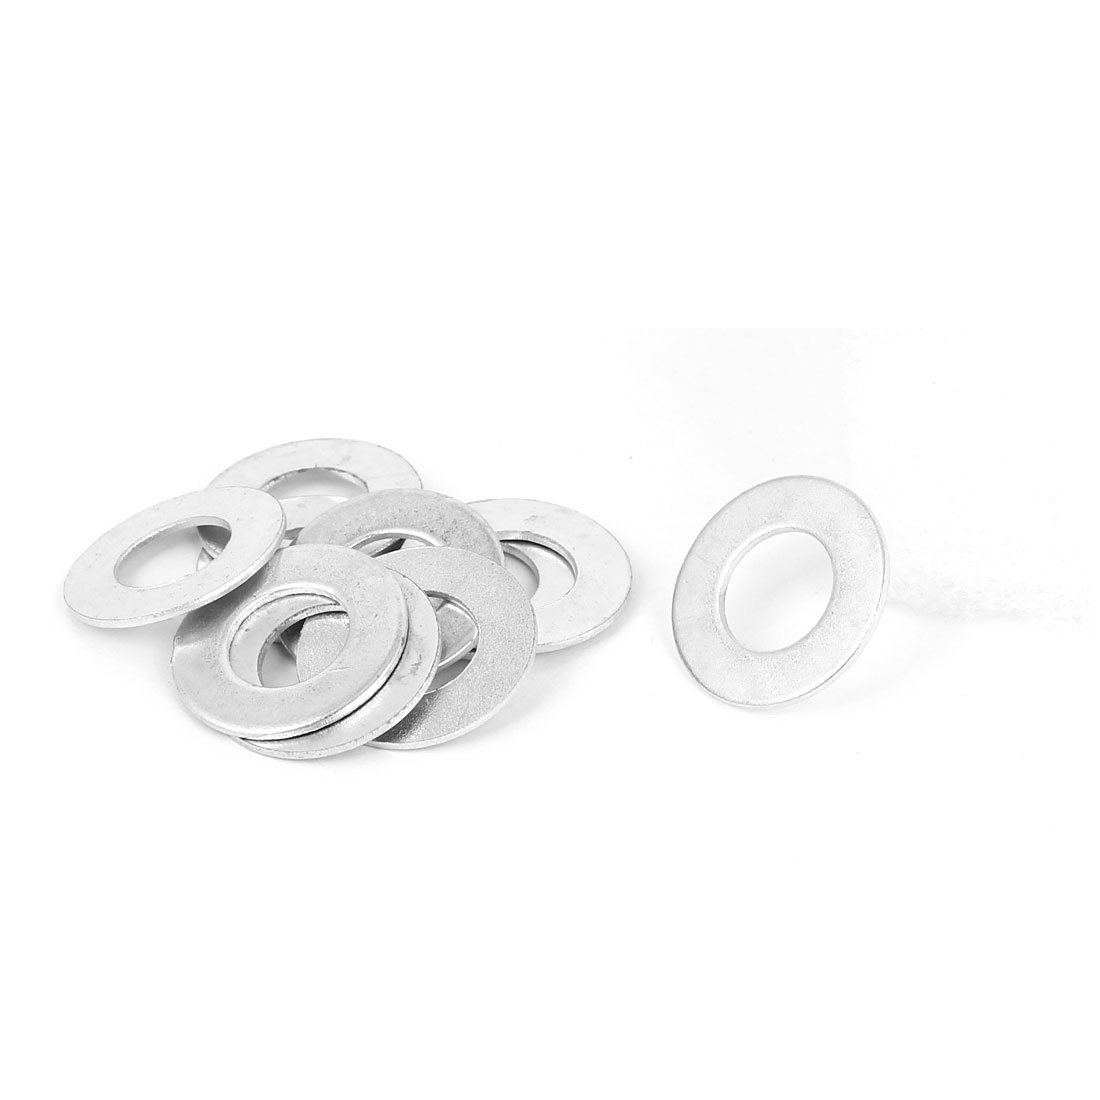 10mm x 20mm x 1mm Zinc Plated Flat Spacers Washers Gaskets Fasteners GB97 10PCS